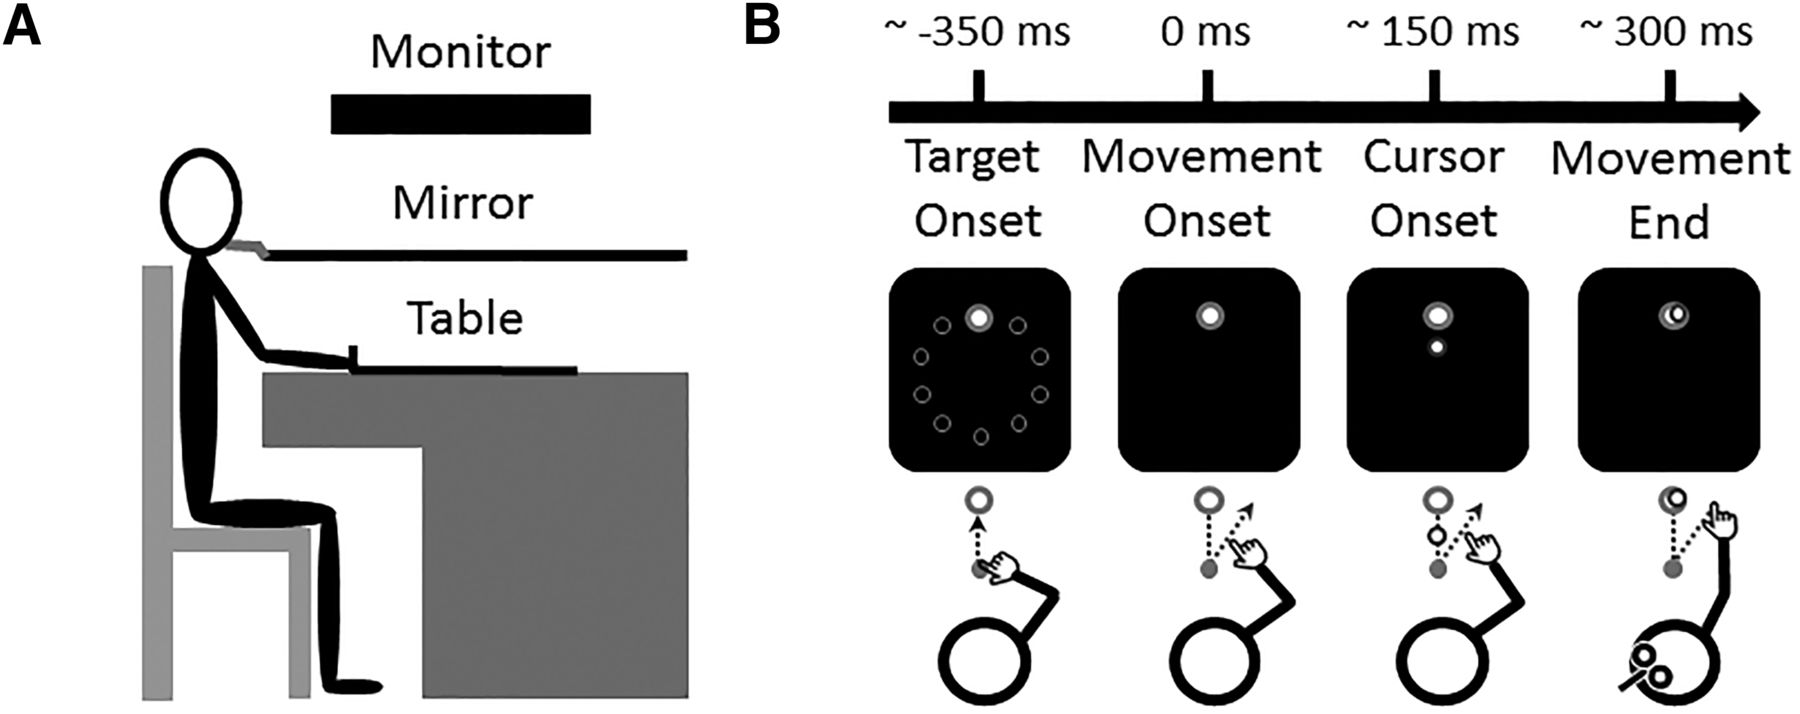 Disruption of M1 Activity during Performance Plateau Impairs